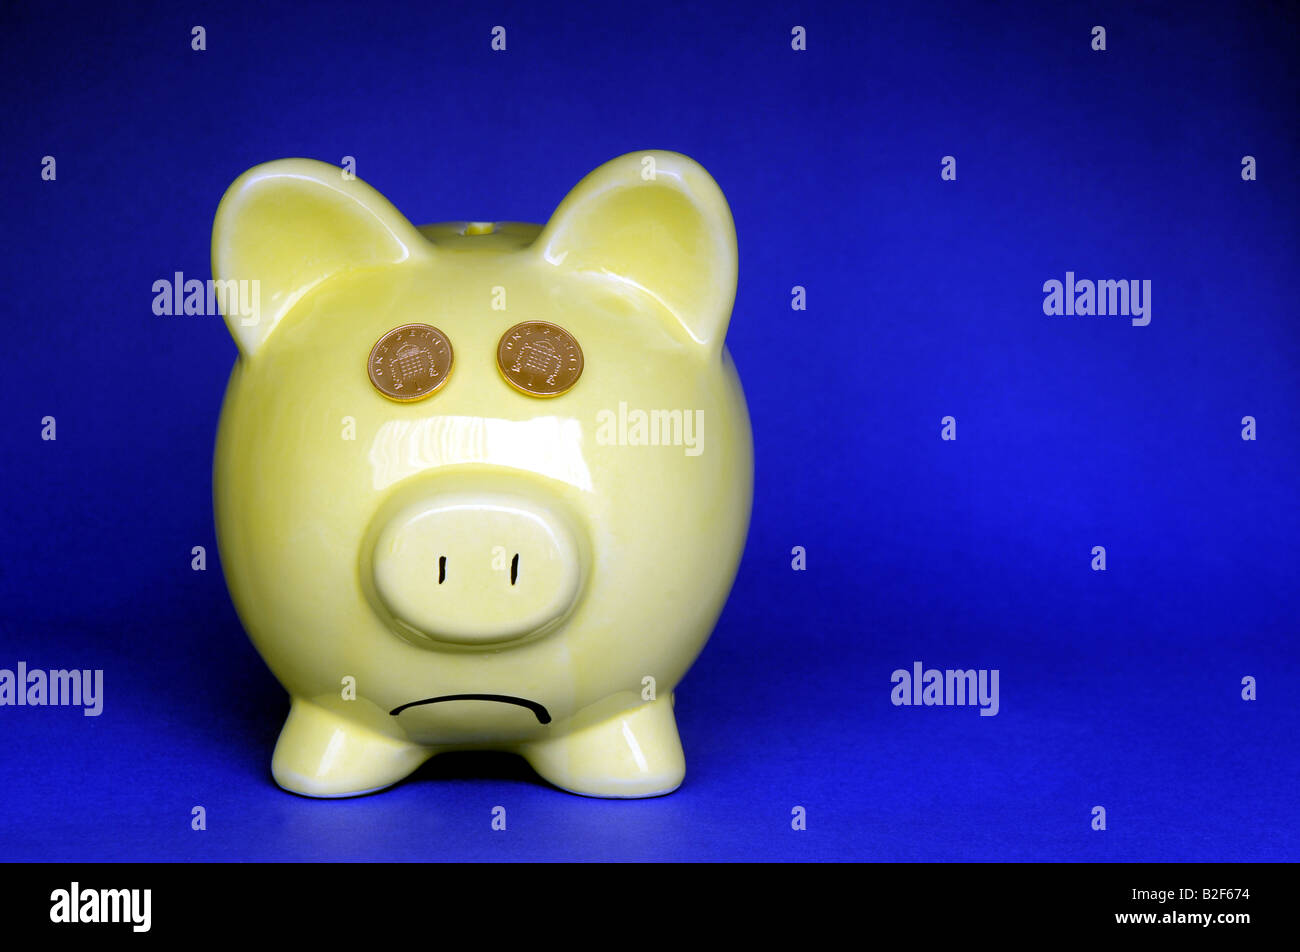 GLUM LOOKING BRITISH PIGGYBANK WITH DOWNTURNED MOUTH, RE RECESSION SAVINGS LOANS INCOMES MORTGAGES COSTS OF LIVING - Stock Image